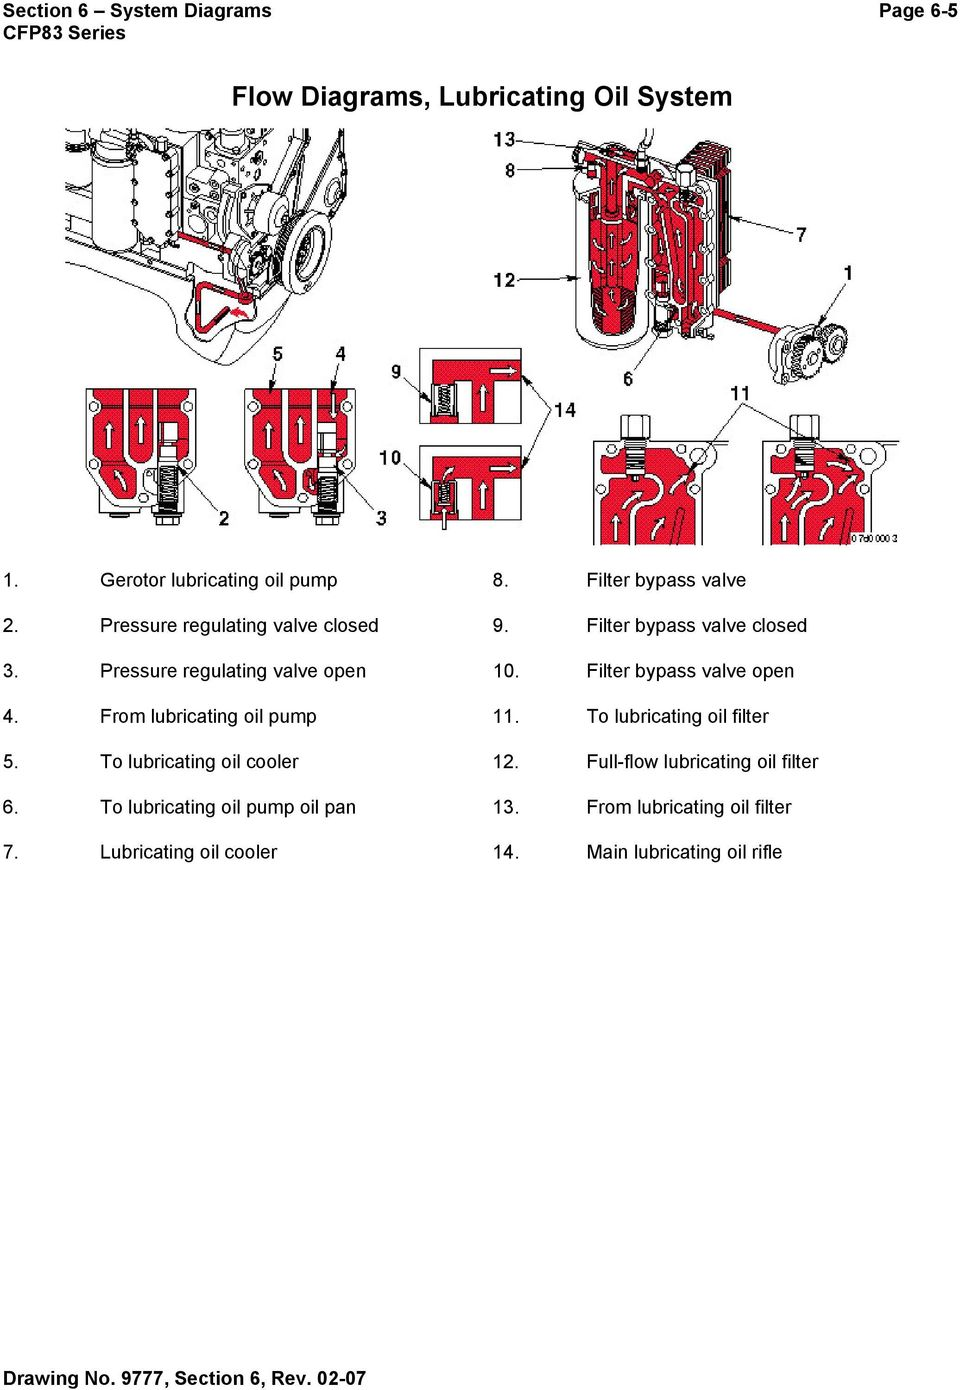 Filter bypass valve open 4. From lubricating oil pump 11. To lubricating oil filter 5. To lubricating oil cooler 12.